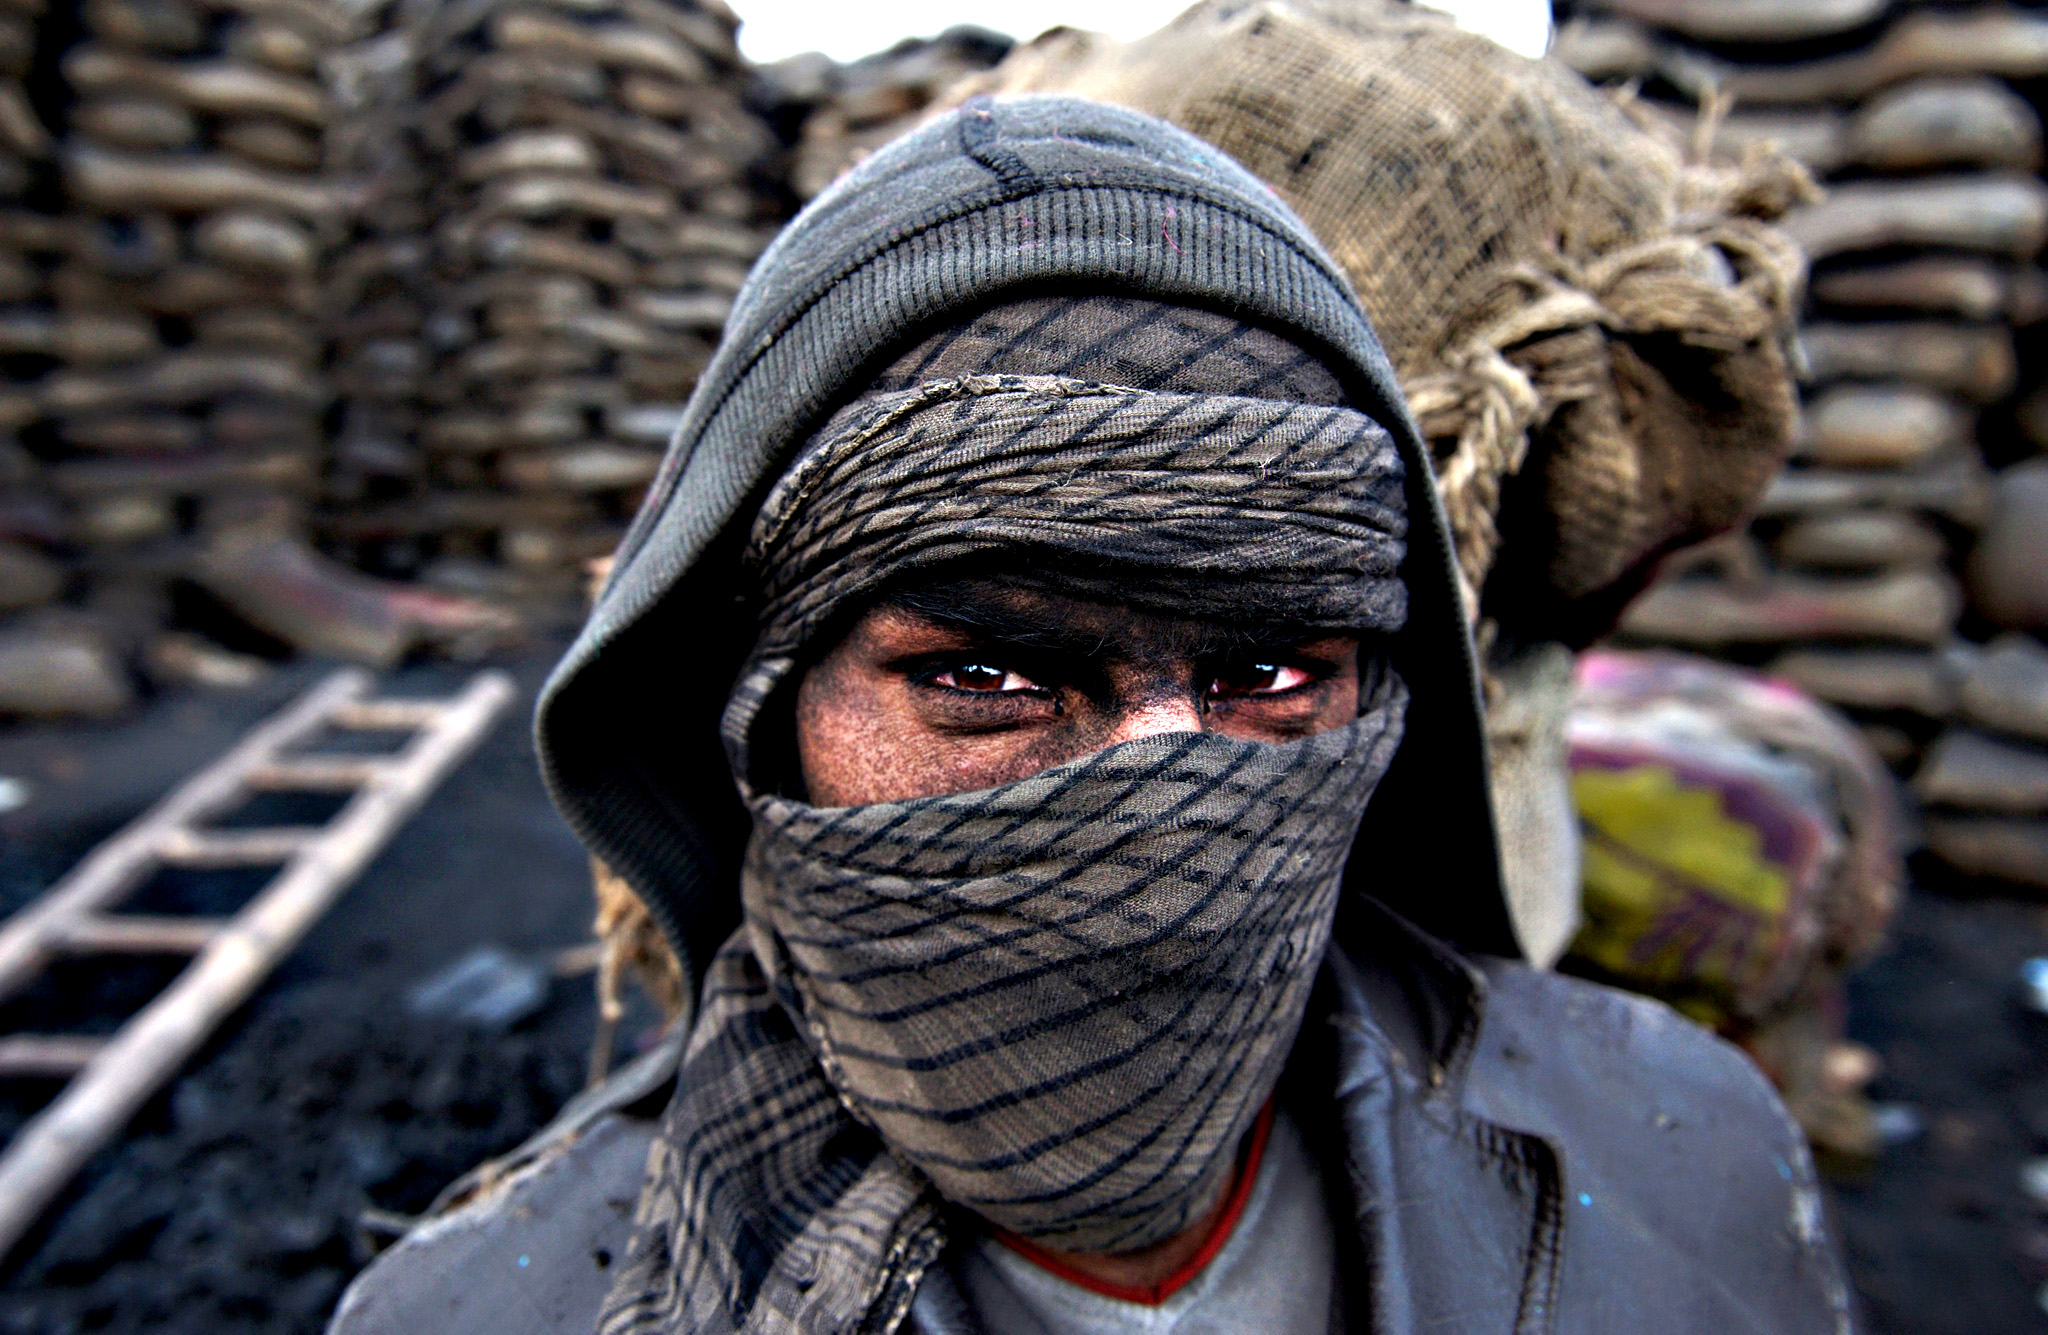 An Afghan worker walks next to coal blocks to be crushed and sold as fuel source during winters in Kabul, Afghanistan, on Wednesday